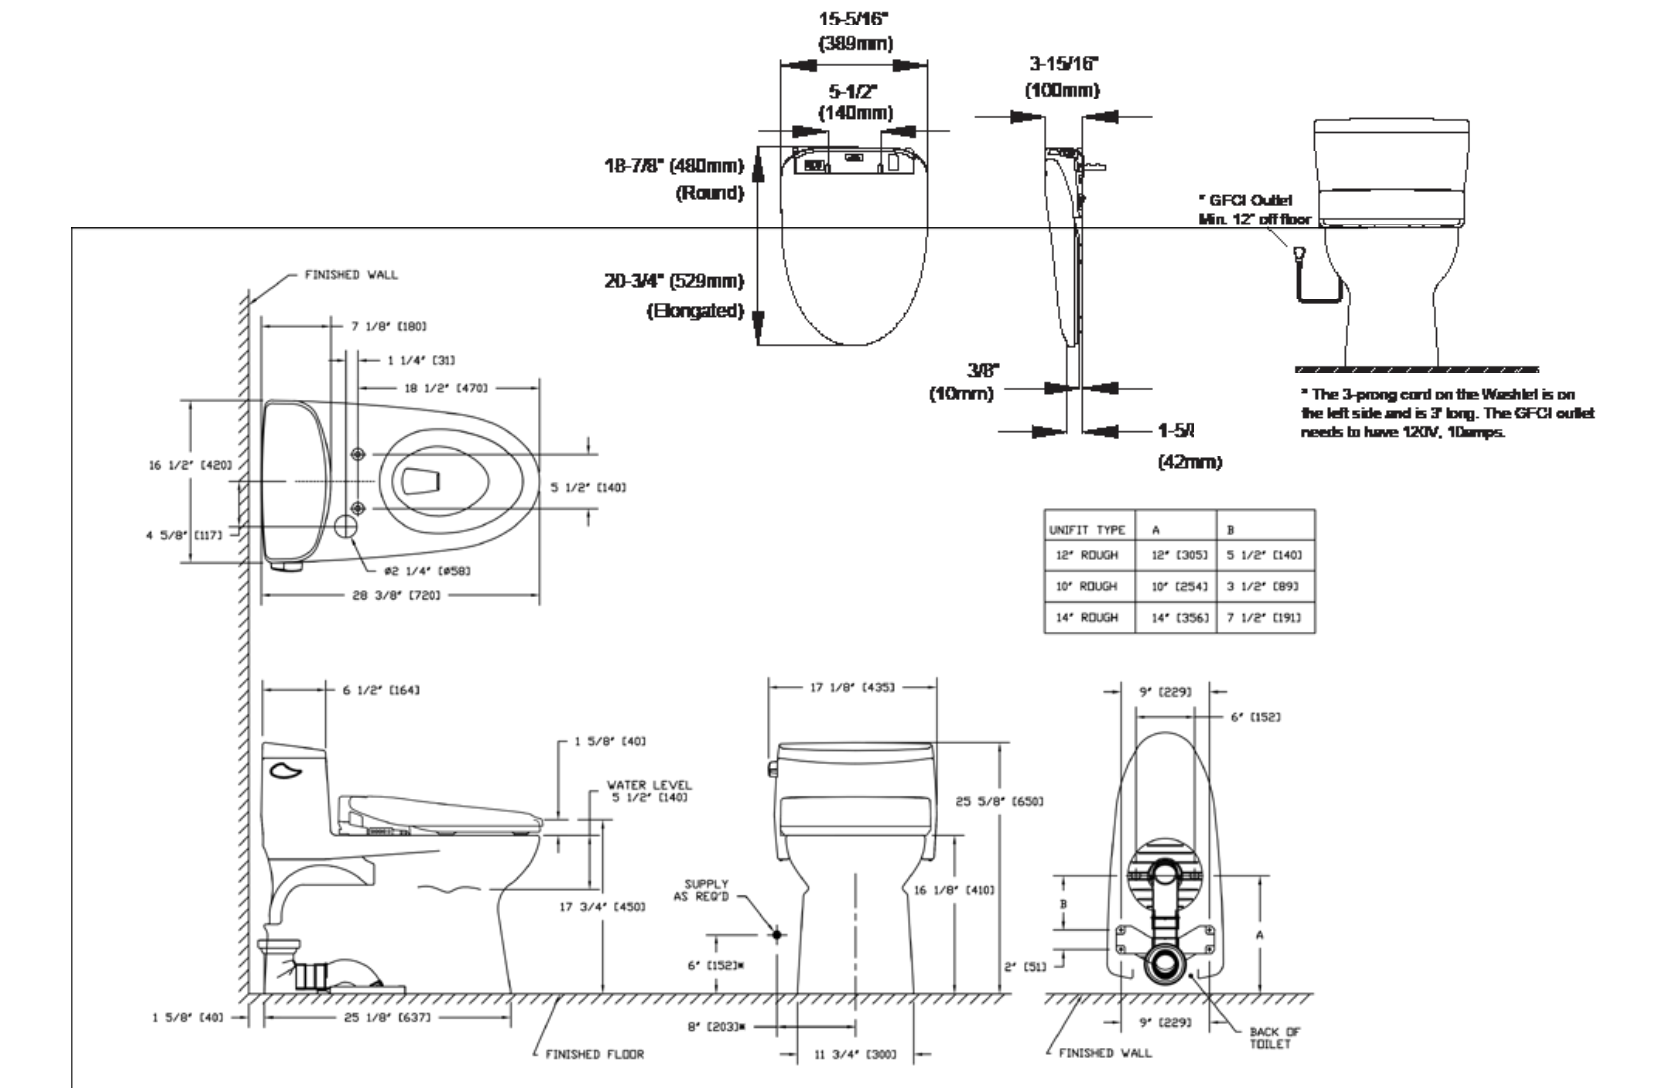 carolina-ii-washlet-s350e-one-piece-toilet-1.28-gpf-diagram.png